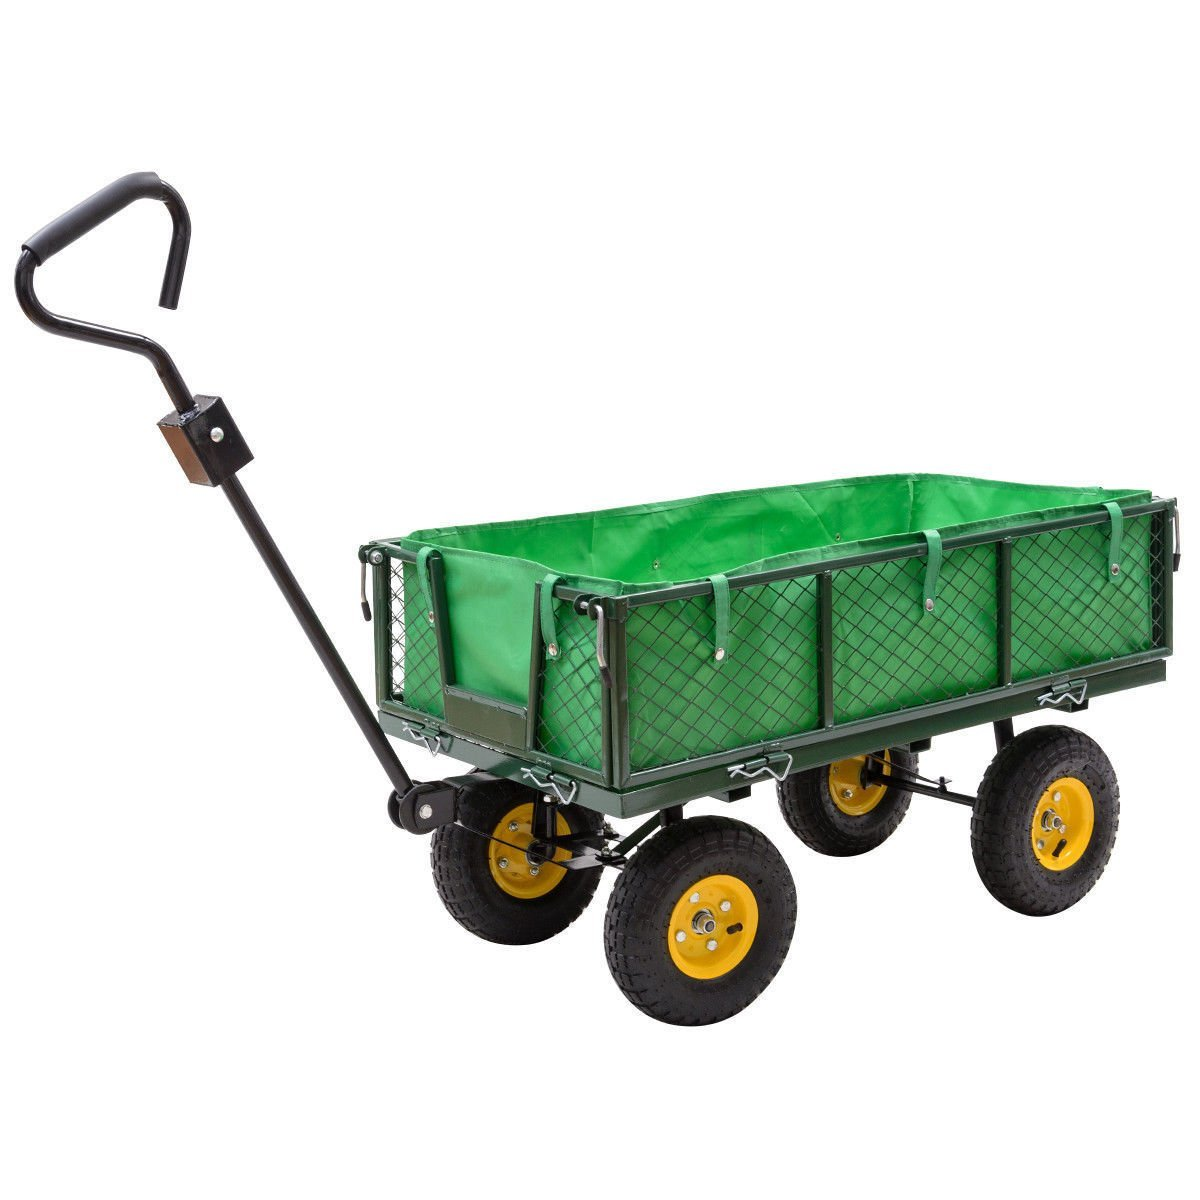 Globe House Products GHP 800-Lbs Capacity Steel & Oxford Cloth Garden Trolley Cart w Liner Handle & Tires